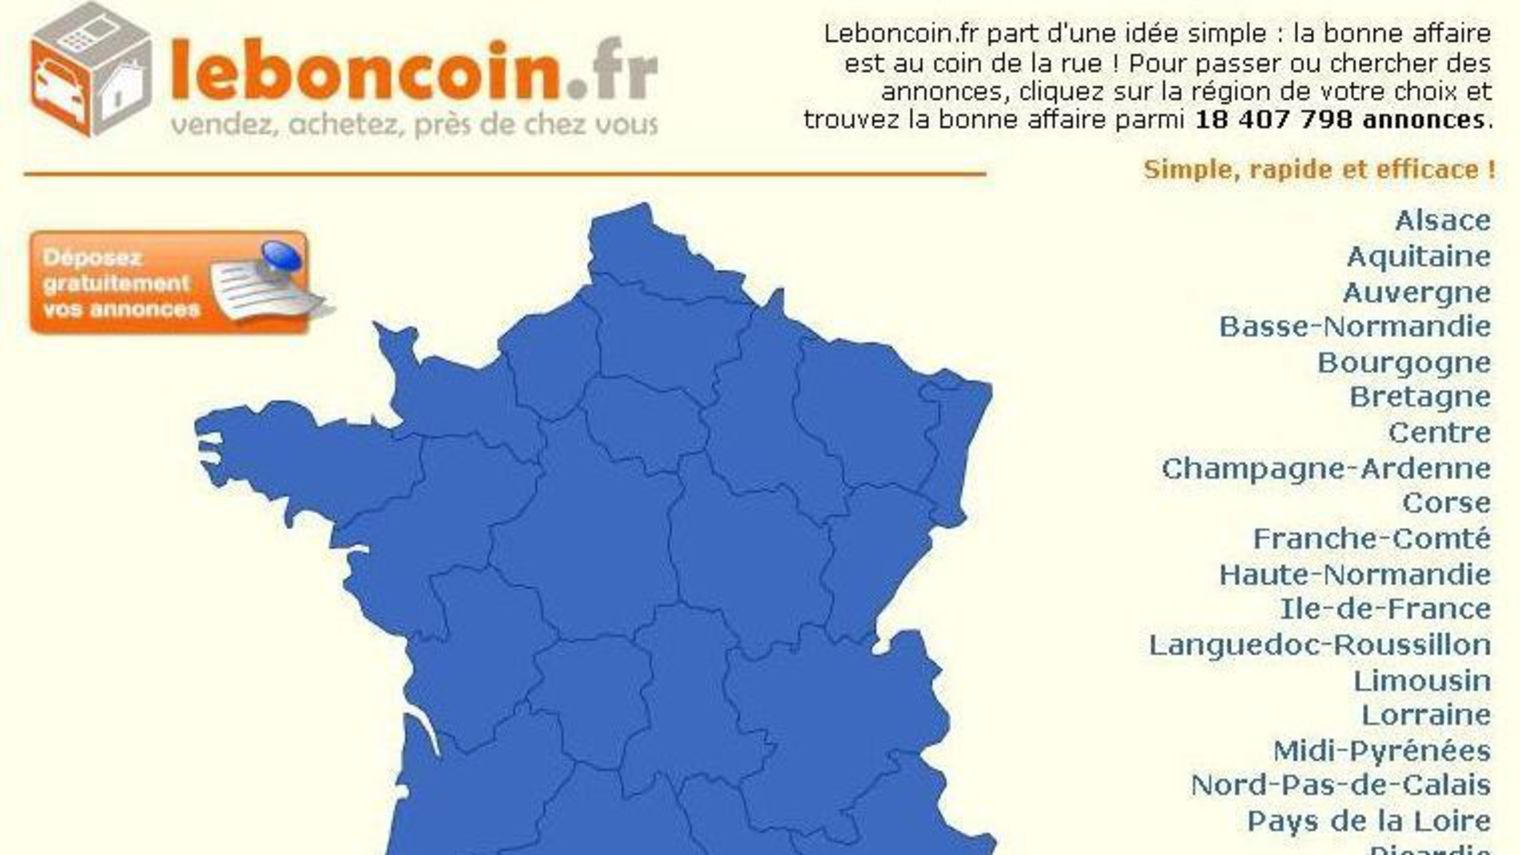 Le bon coin ameublement 13 for Le bon coin 29 ameublement